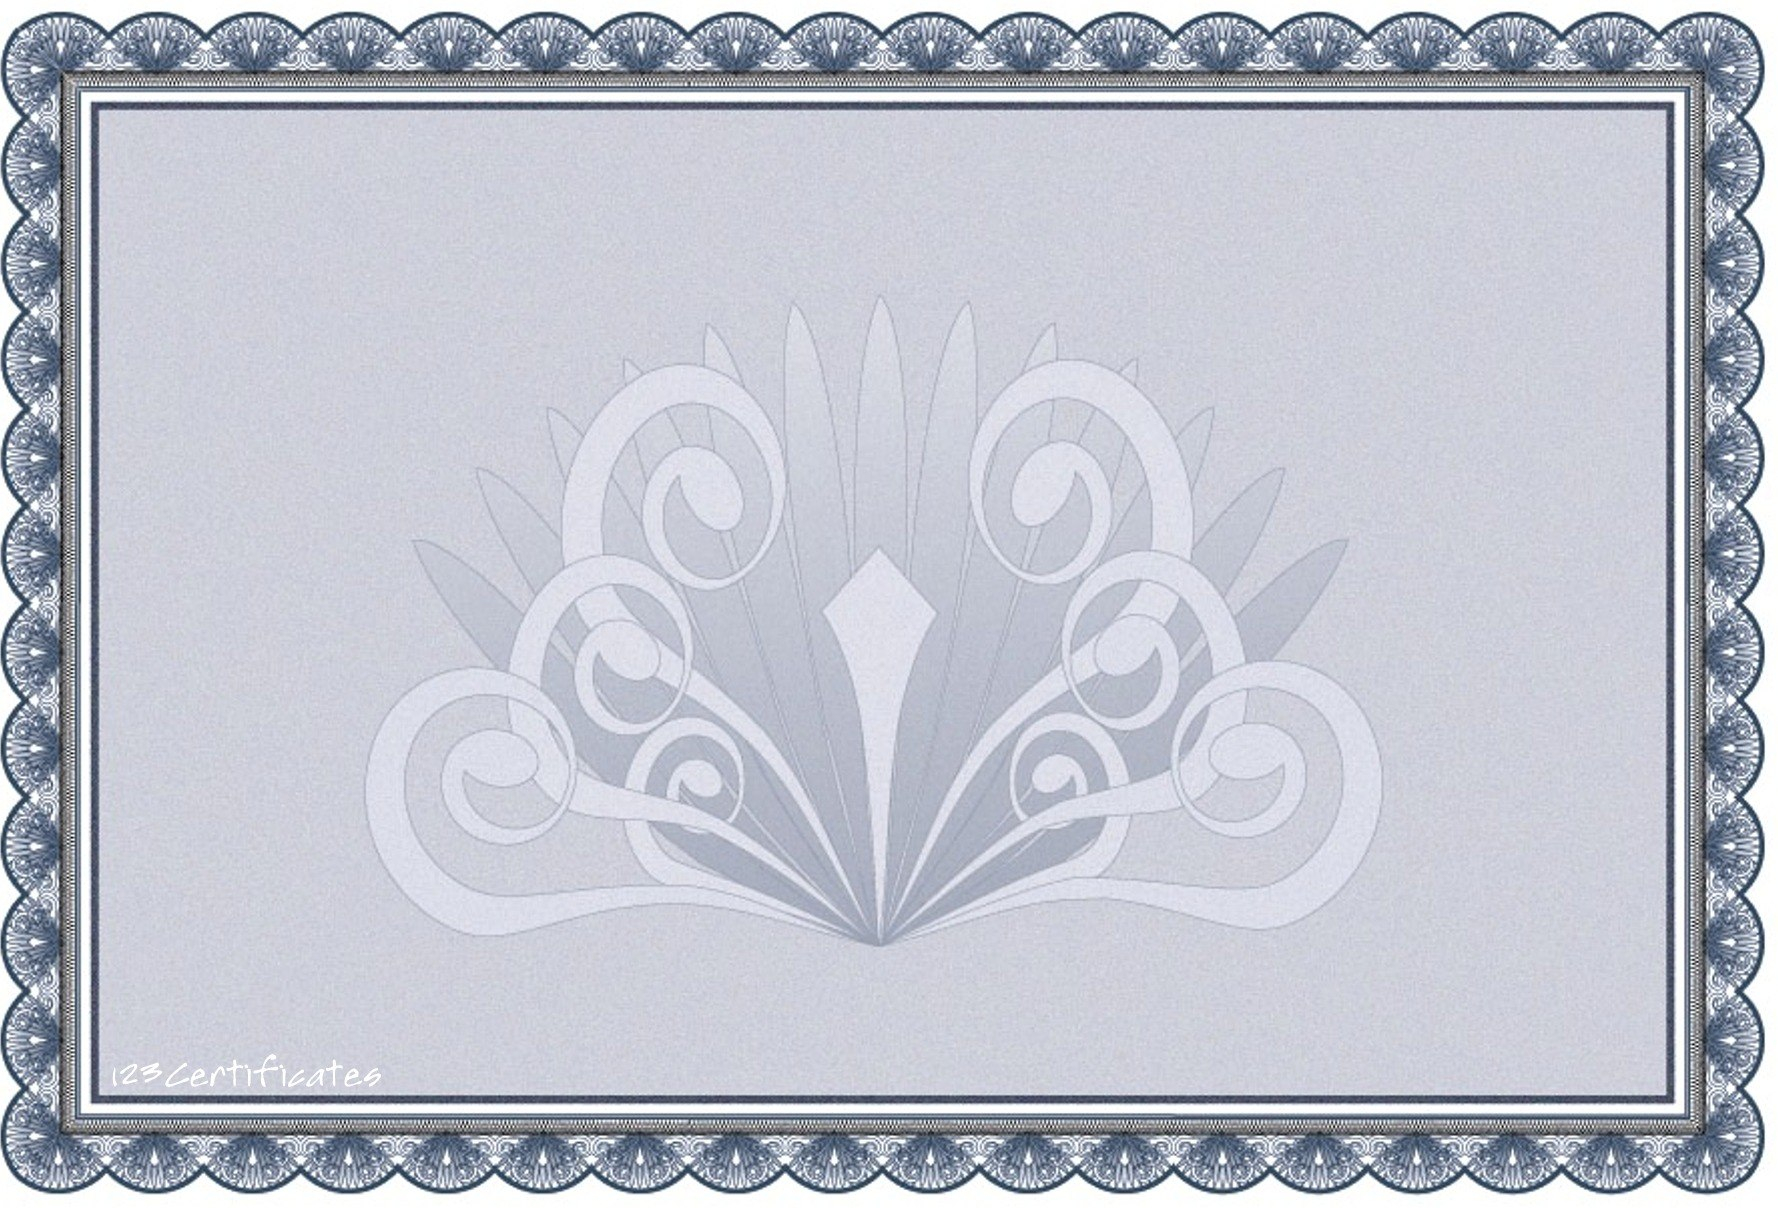 Free Certificate Borders To Download Intended For Free Printable Certificate Border Templates